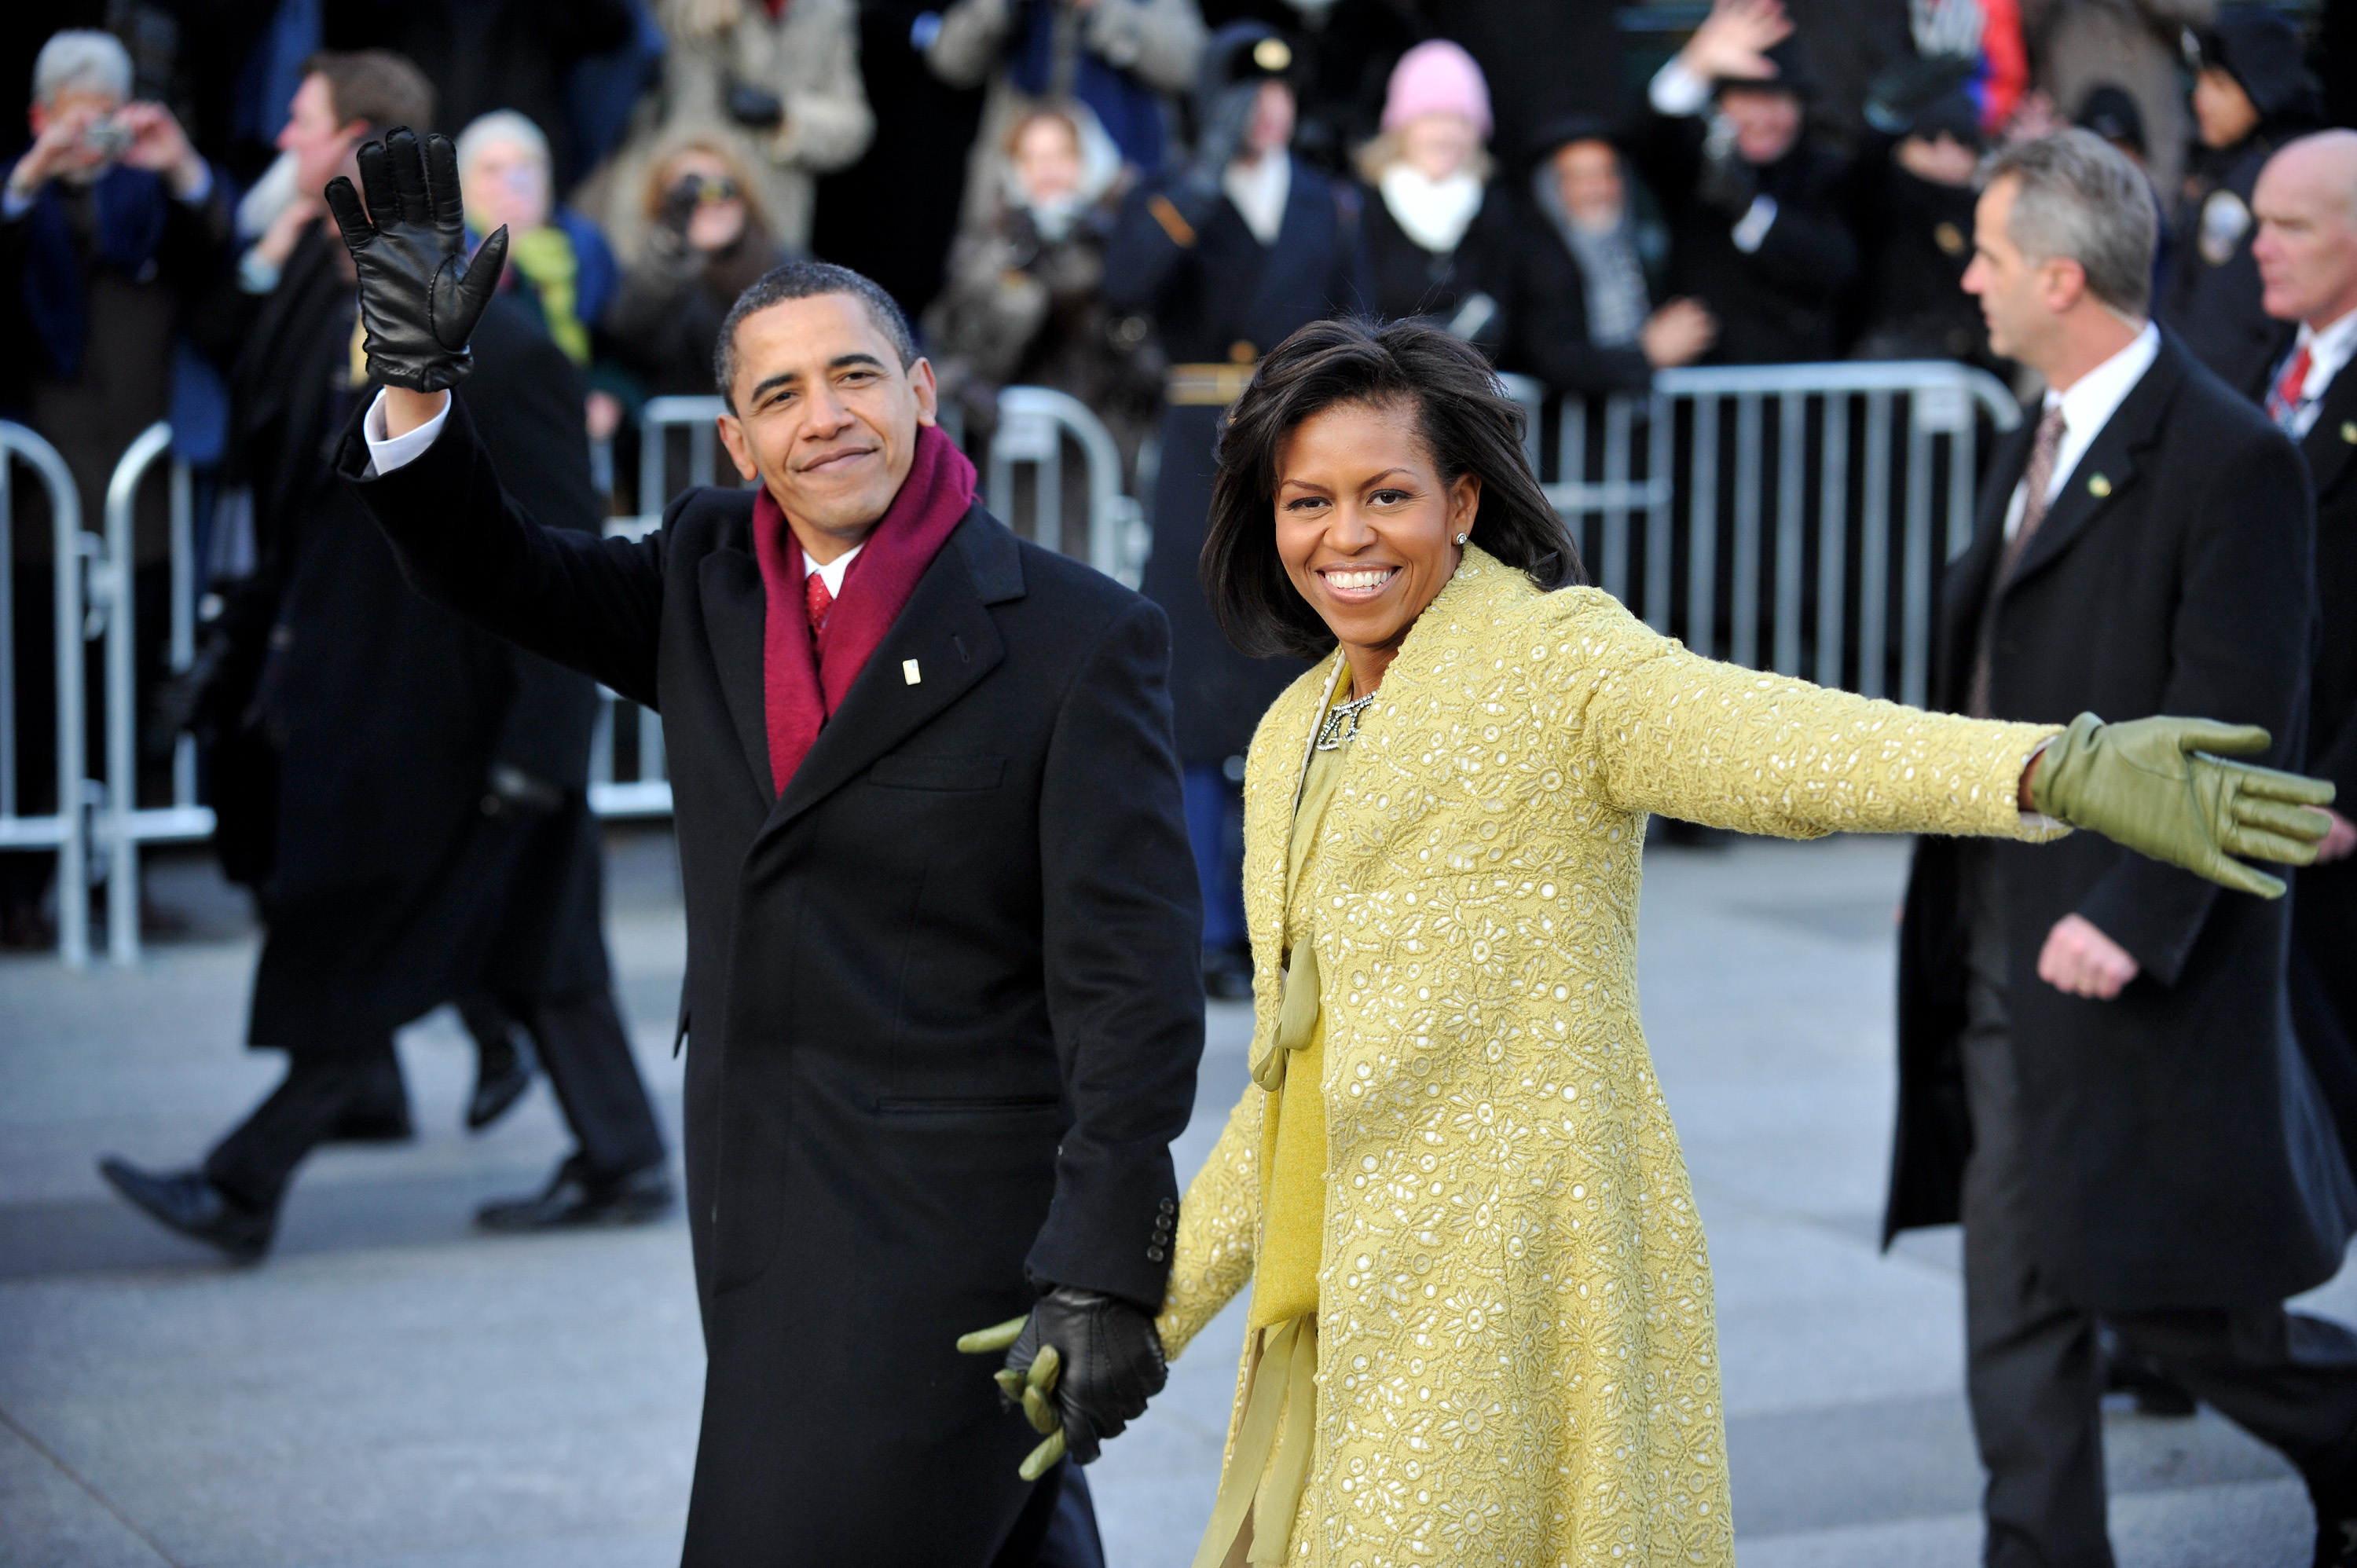 President Obama and first lady Michelle Obama walk in the Inaugural Parade on Jan. 20, 2009 in Washington, DC.